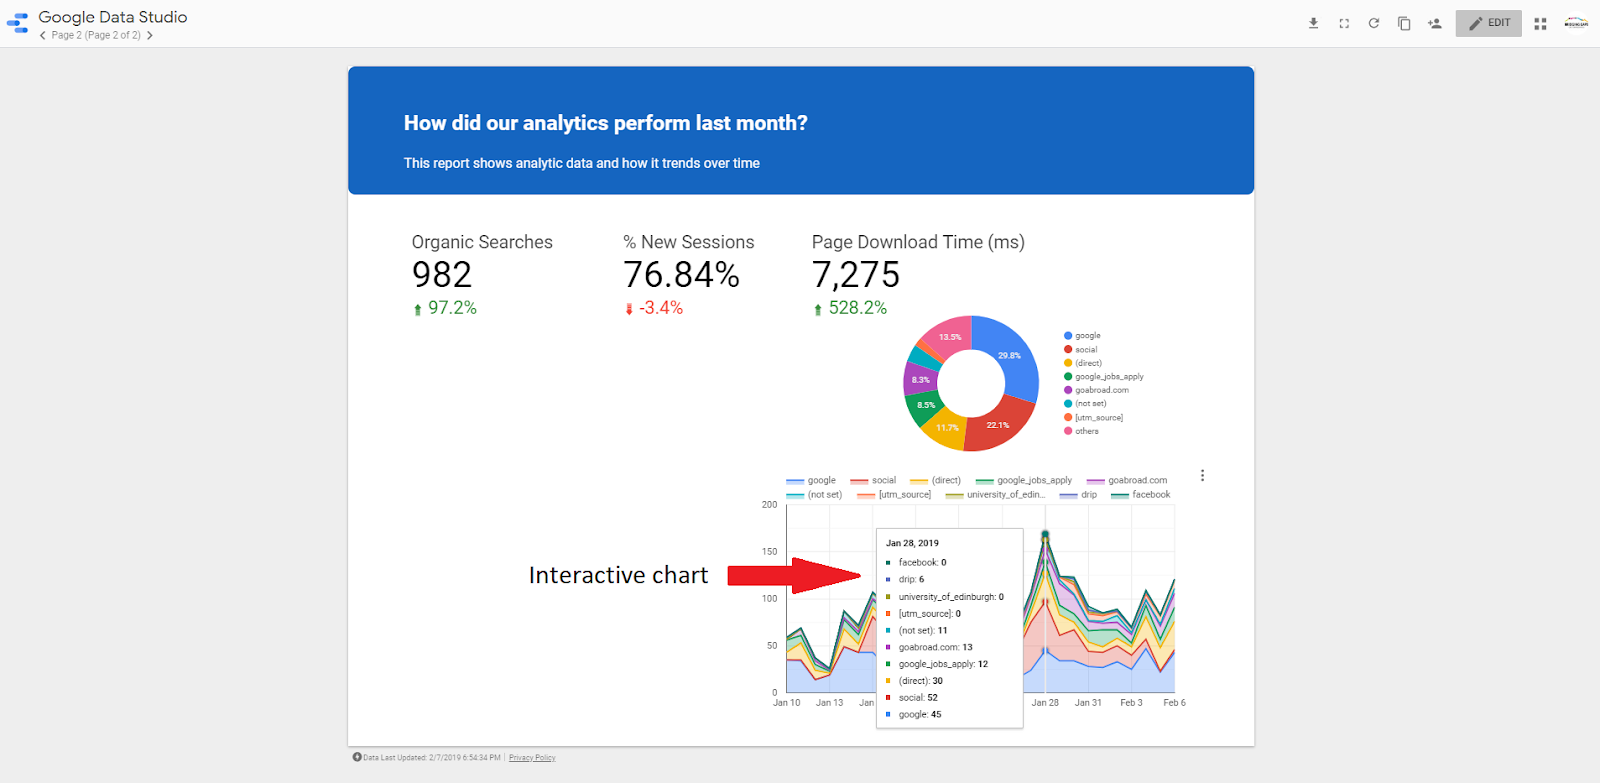 The Ultimate Charts & Graphs Guide for Google Data Studio